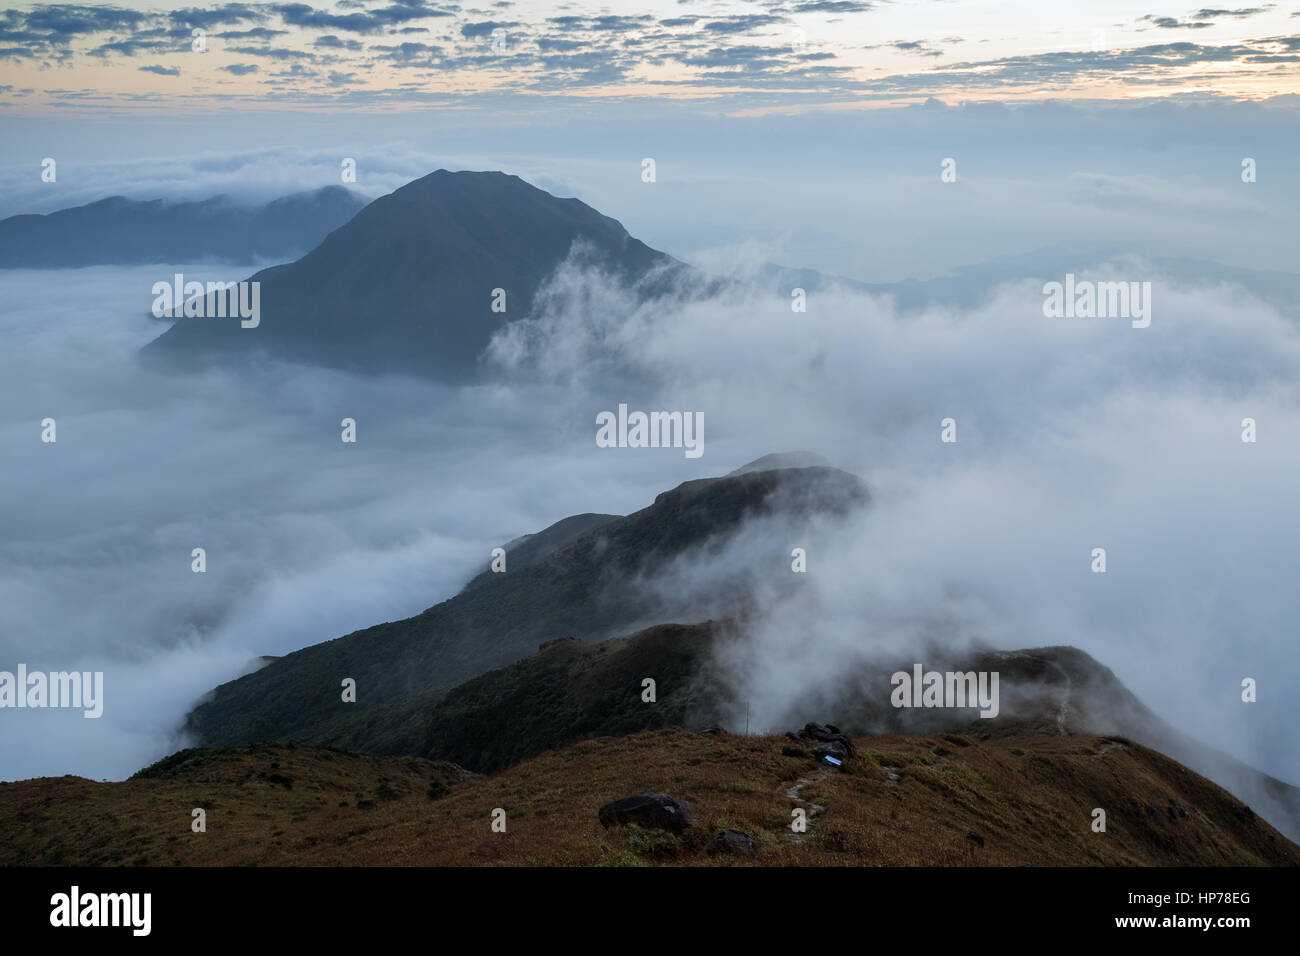 Cloudy view from the Lantau Peak (the second highest peak in Hong Kong, China (934m)) at dawn. - Stock Image